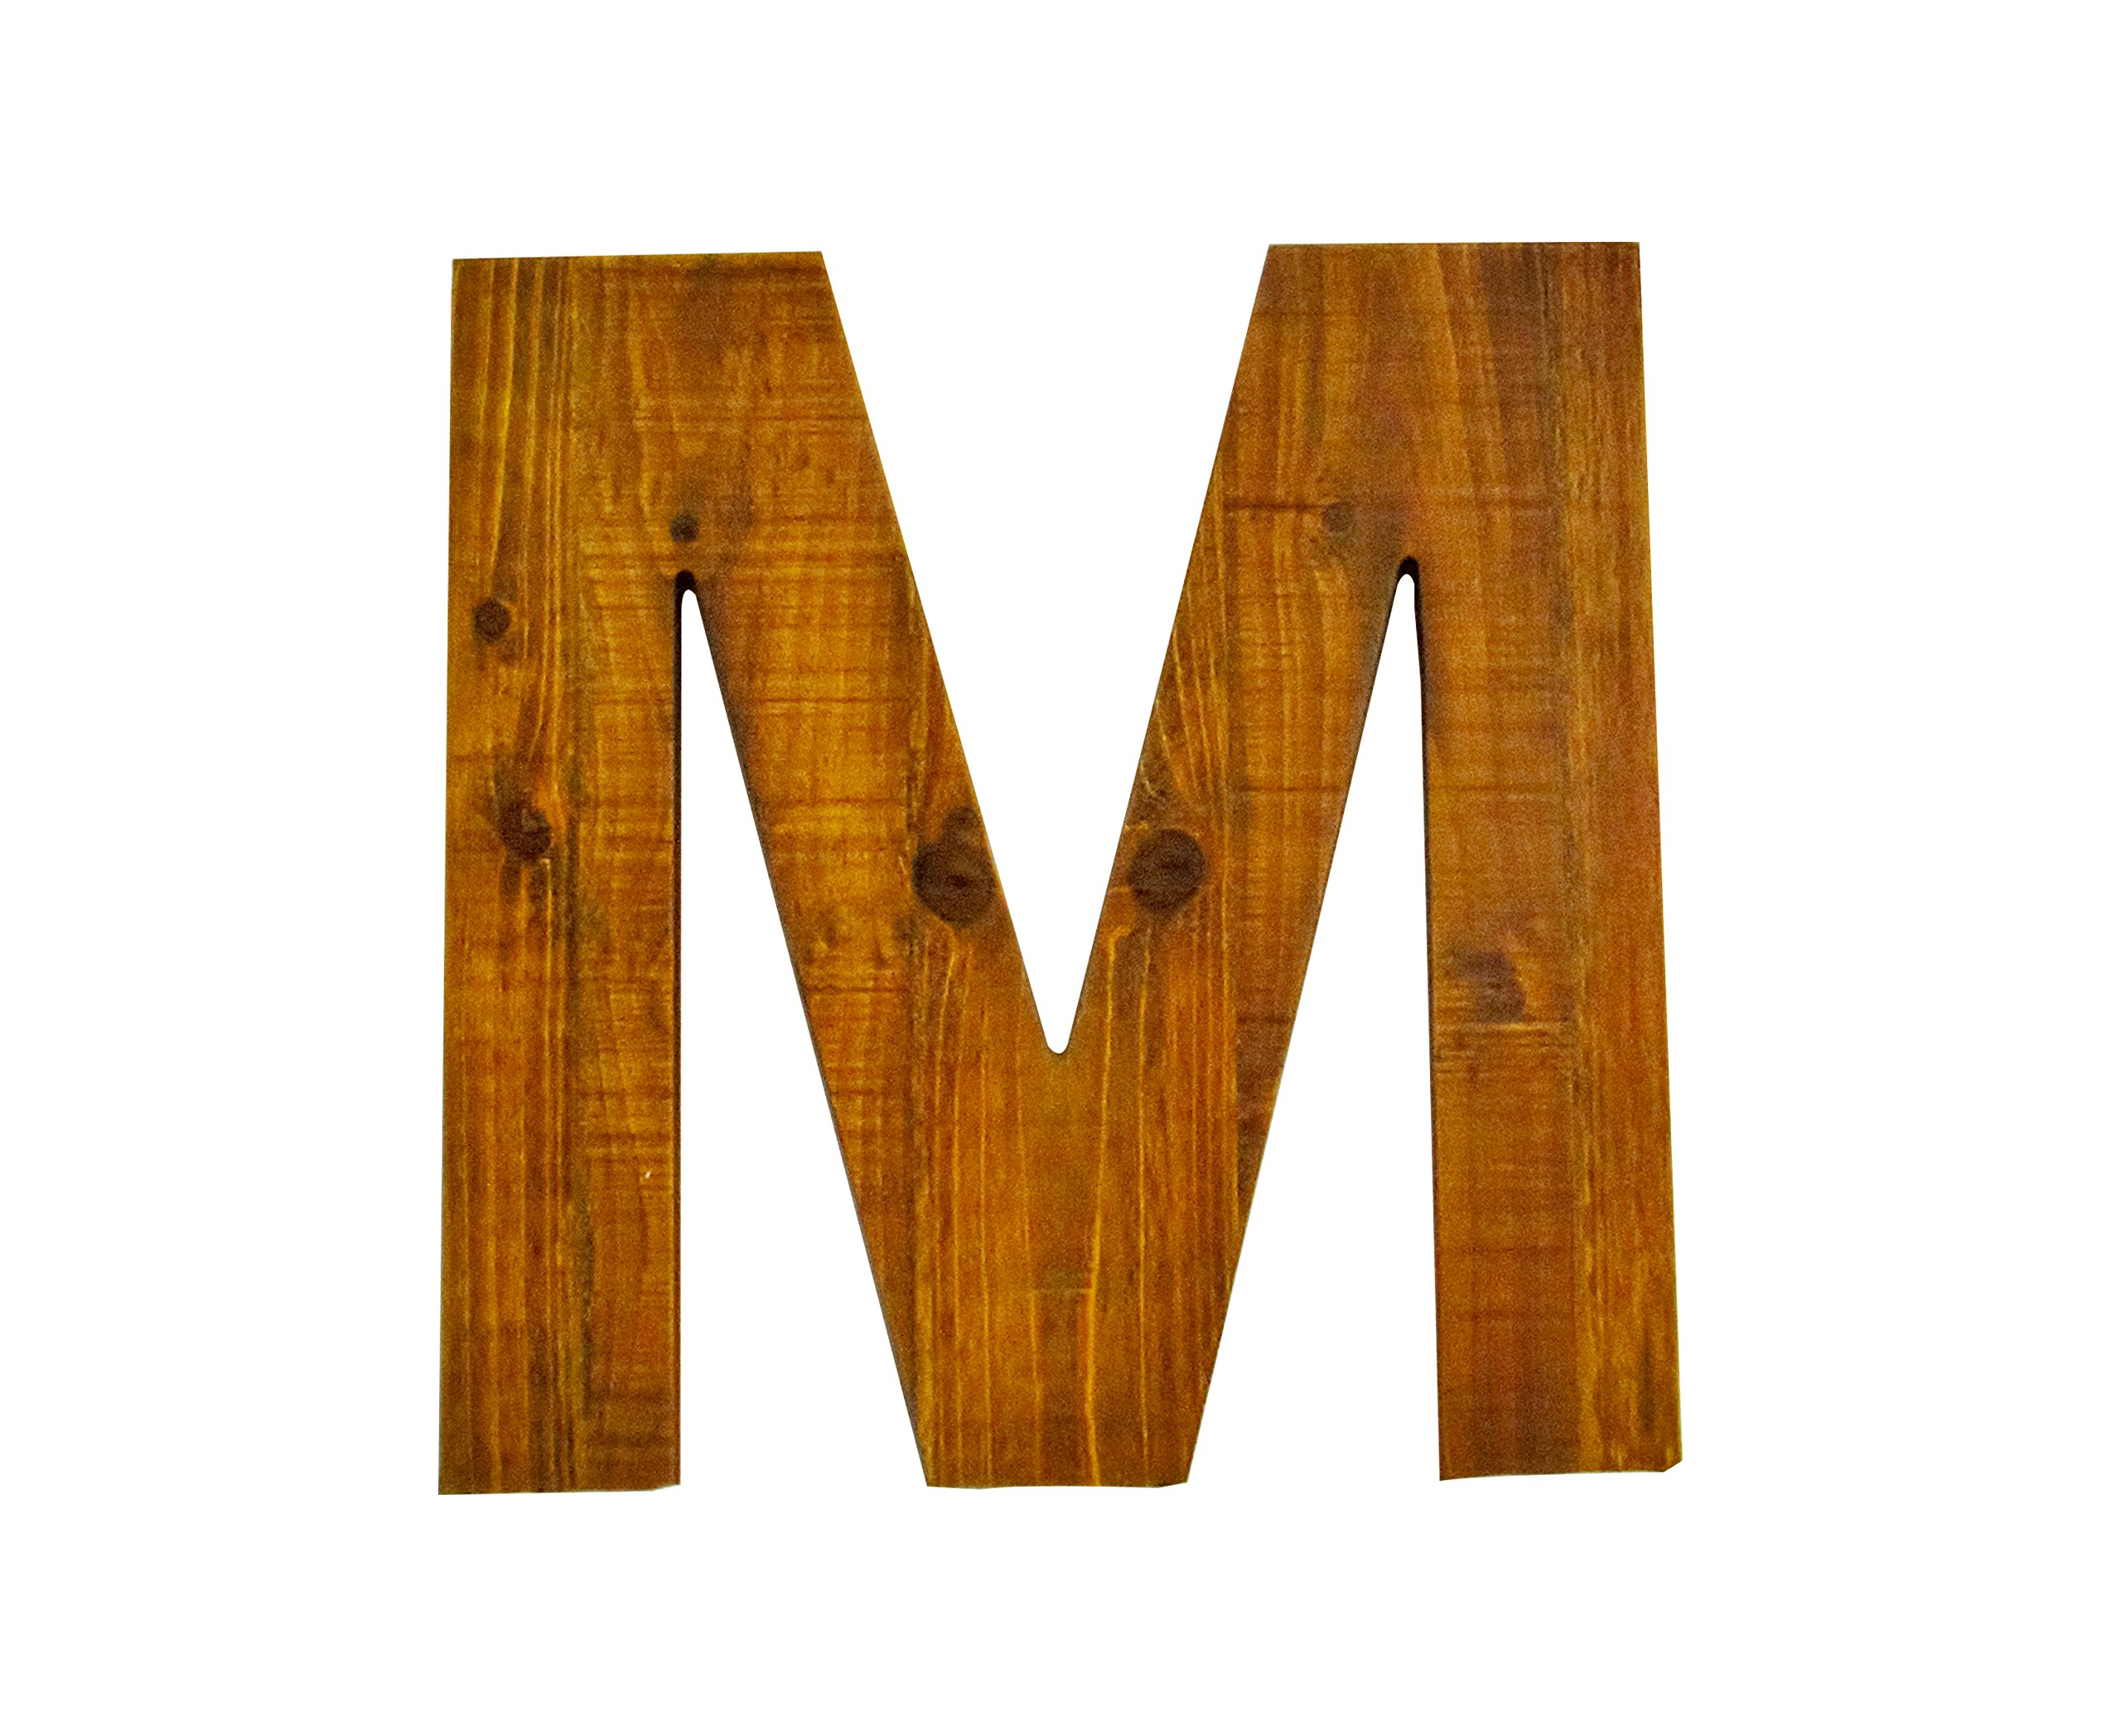 Your Home and Beyond- A finished letter M in a natural wood color. Great for hanging on the wall or leaning on a book shelf. There is grain on the wood and the size of the piece is perfect.